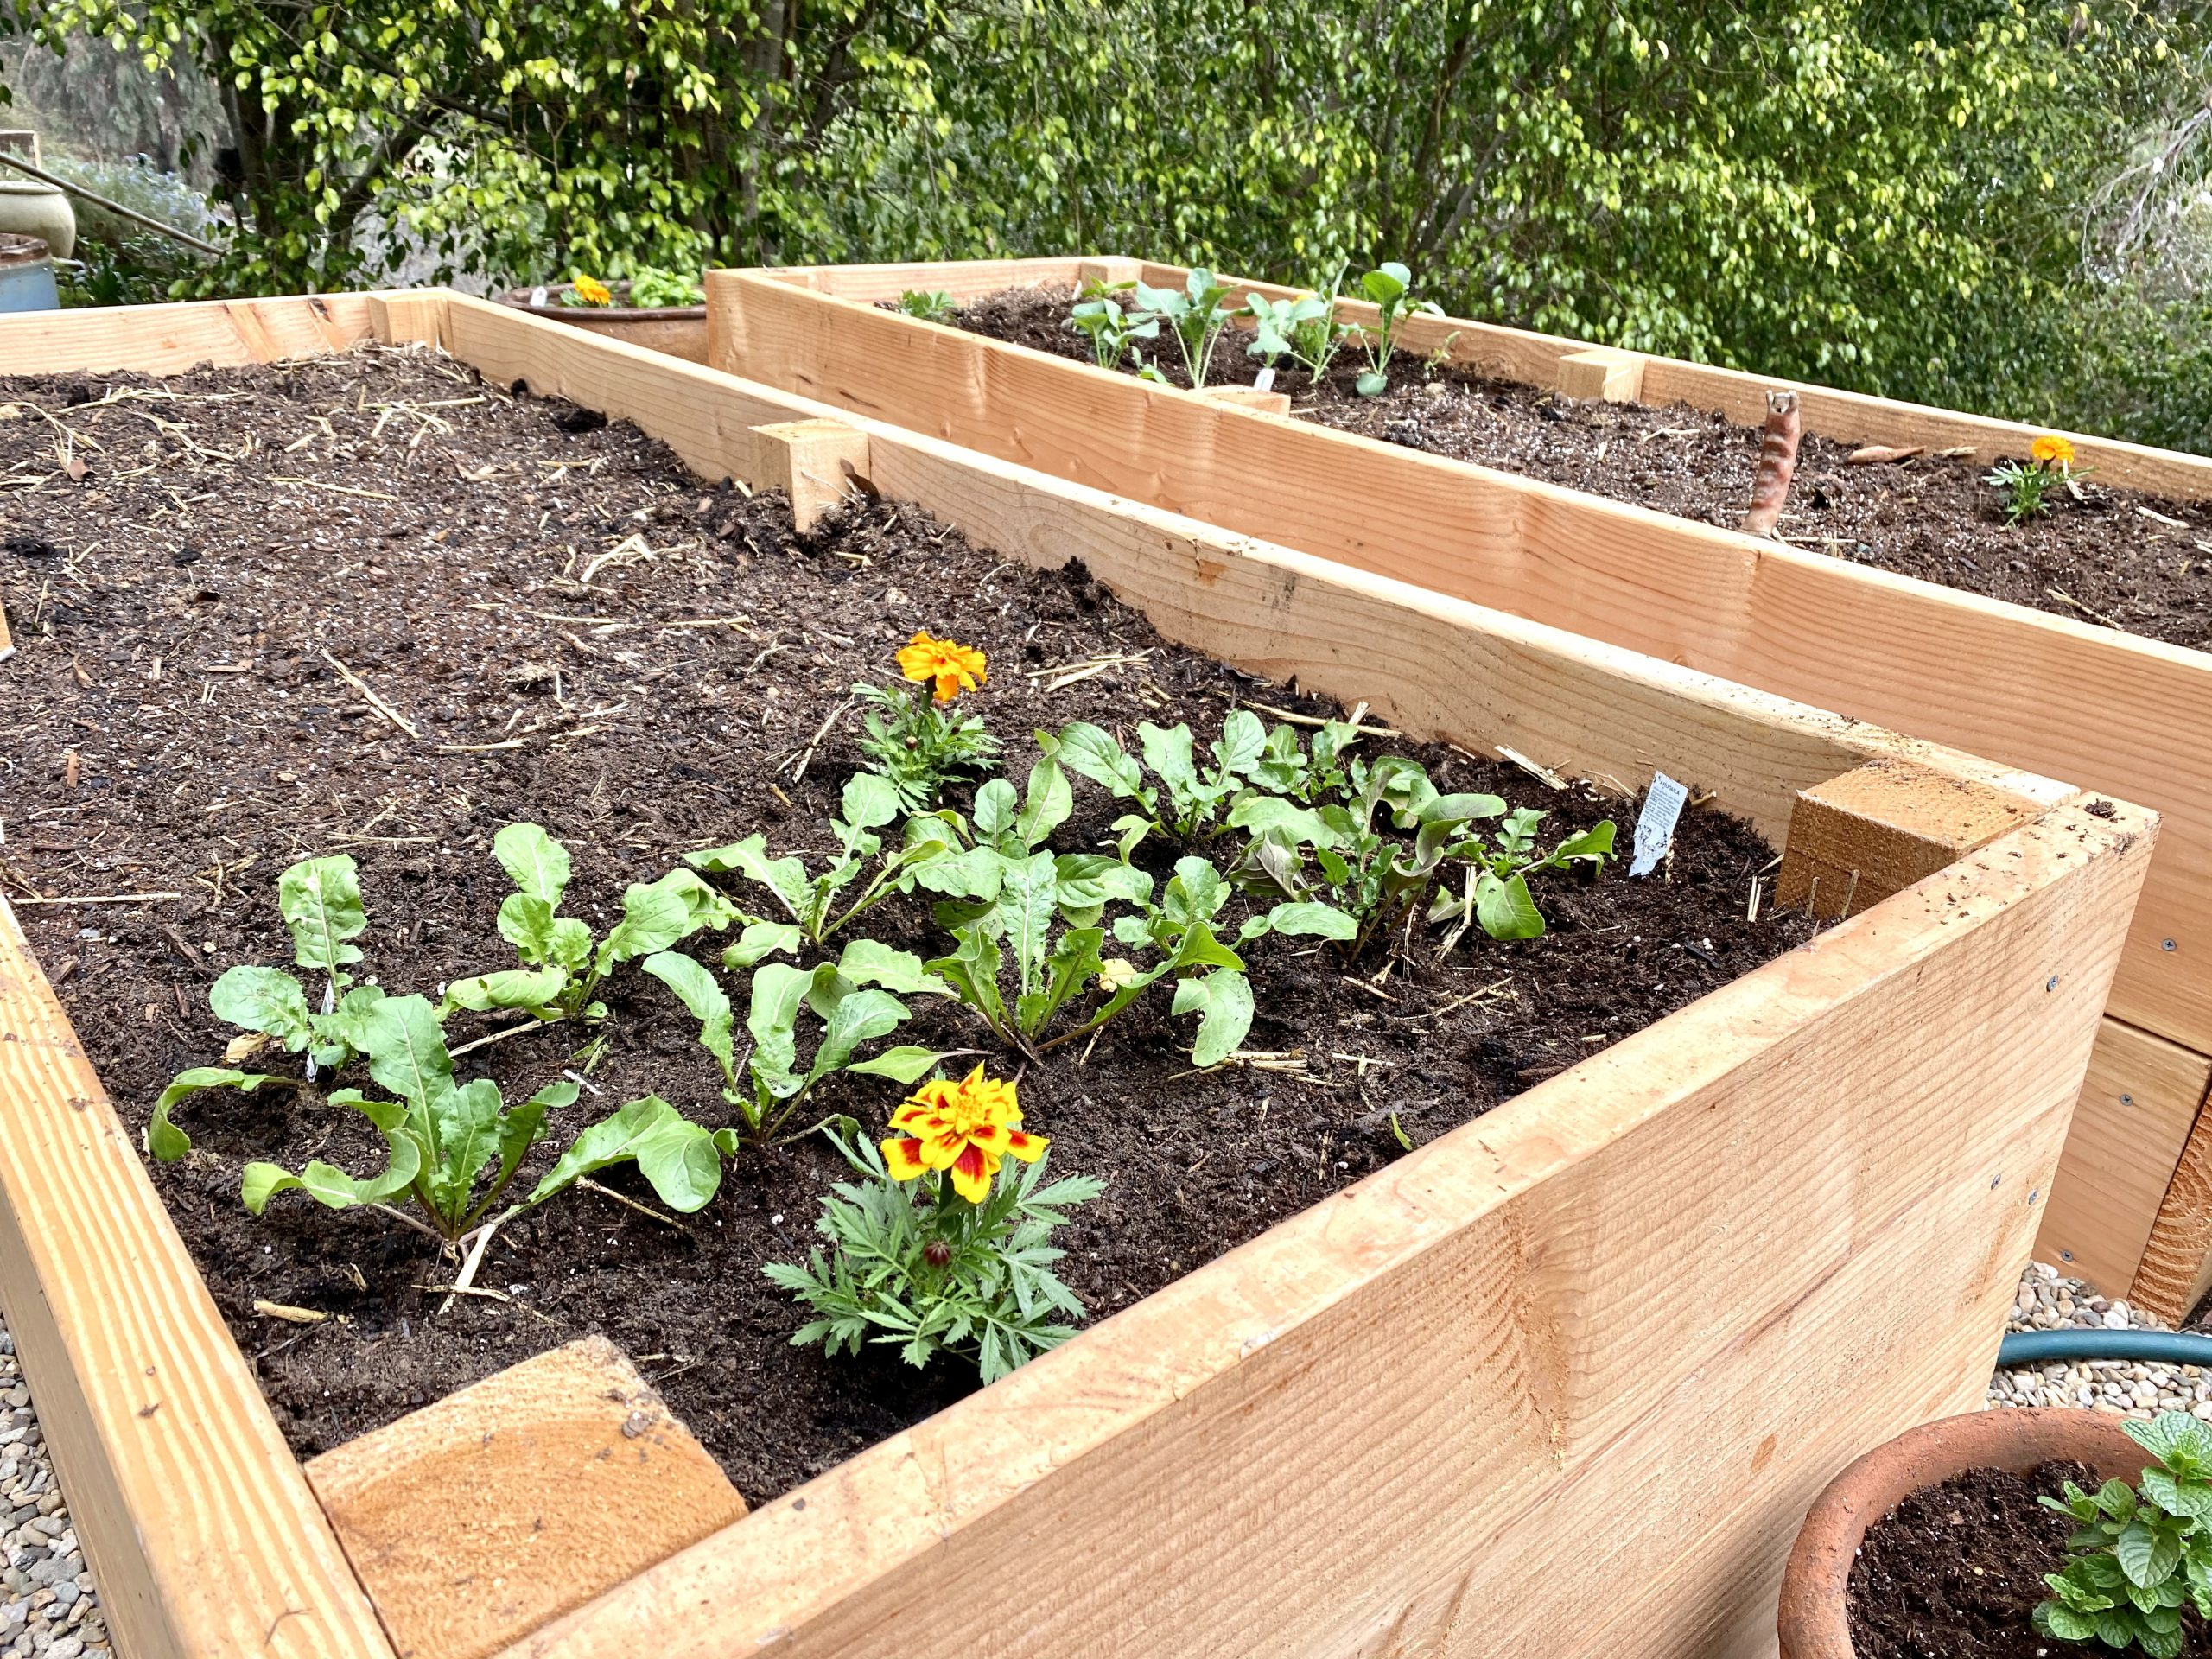 new vegetable garden raised beds are freshly planted